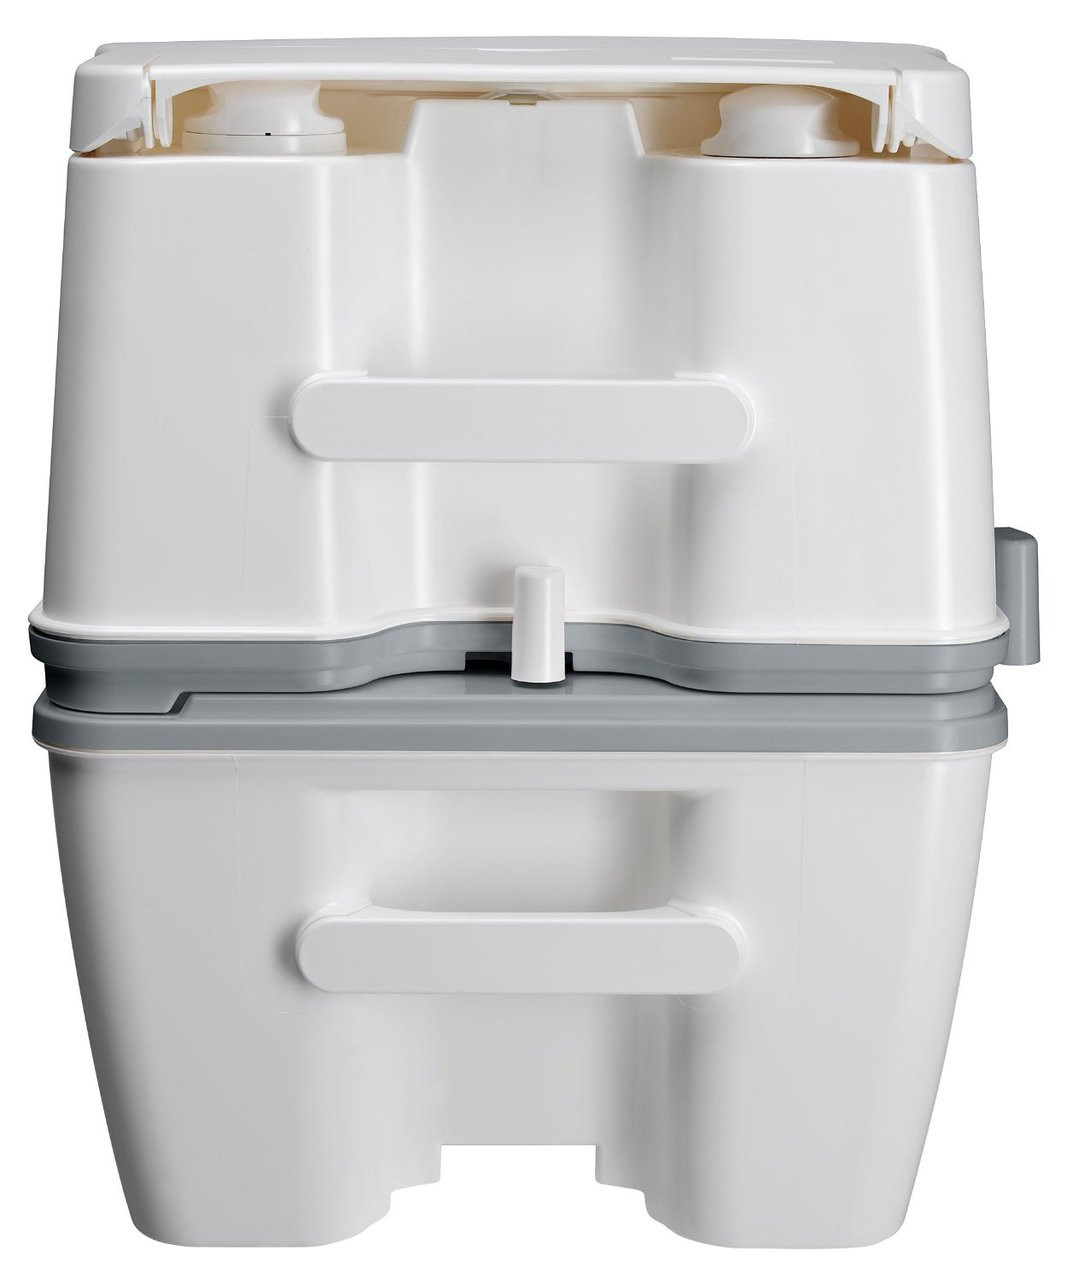 Camping Toilet Thetford Porta Potti Excellence Portable Camping Toilet Manual Flush